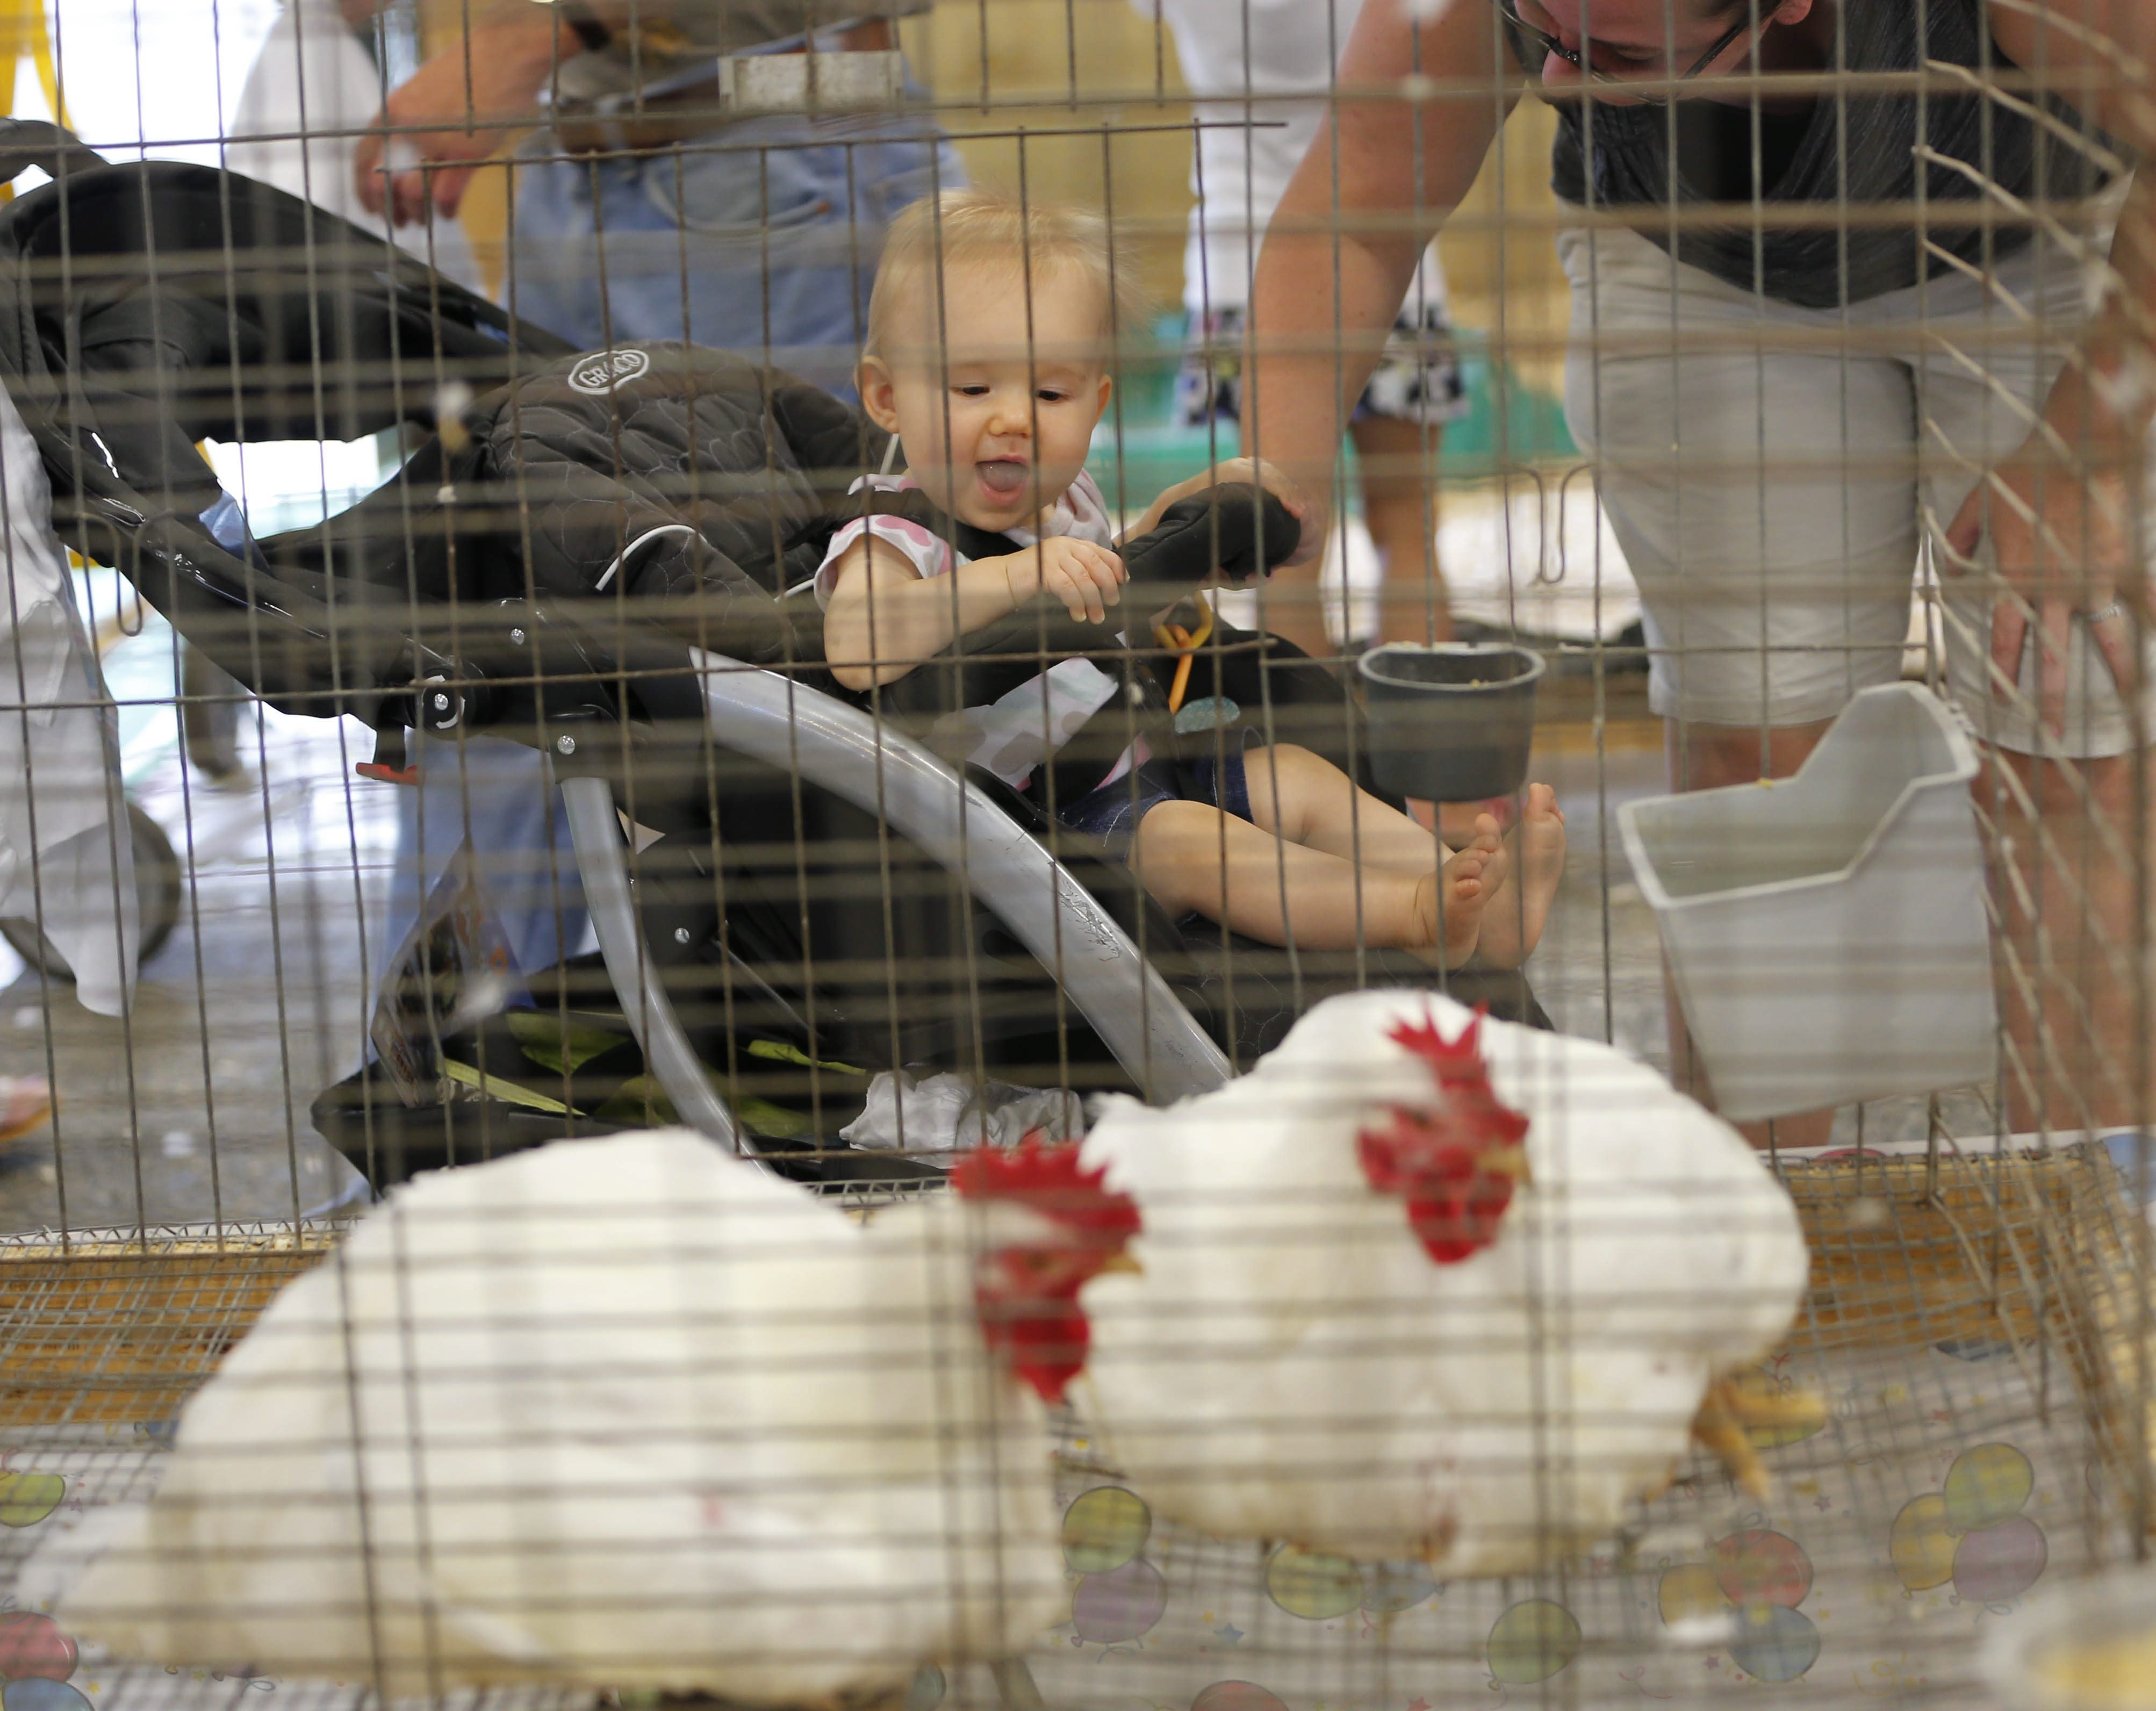 A one-year-old fairgoer admires the chickens on display at the 2014 Erie County Fair. Live fowl competitions will be banned at all fairs this year due to an avian flu outbreak in the Midwest.